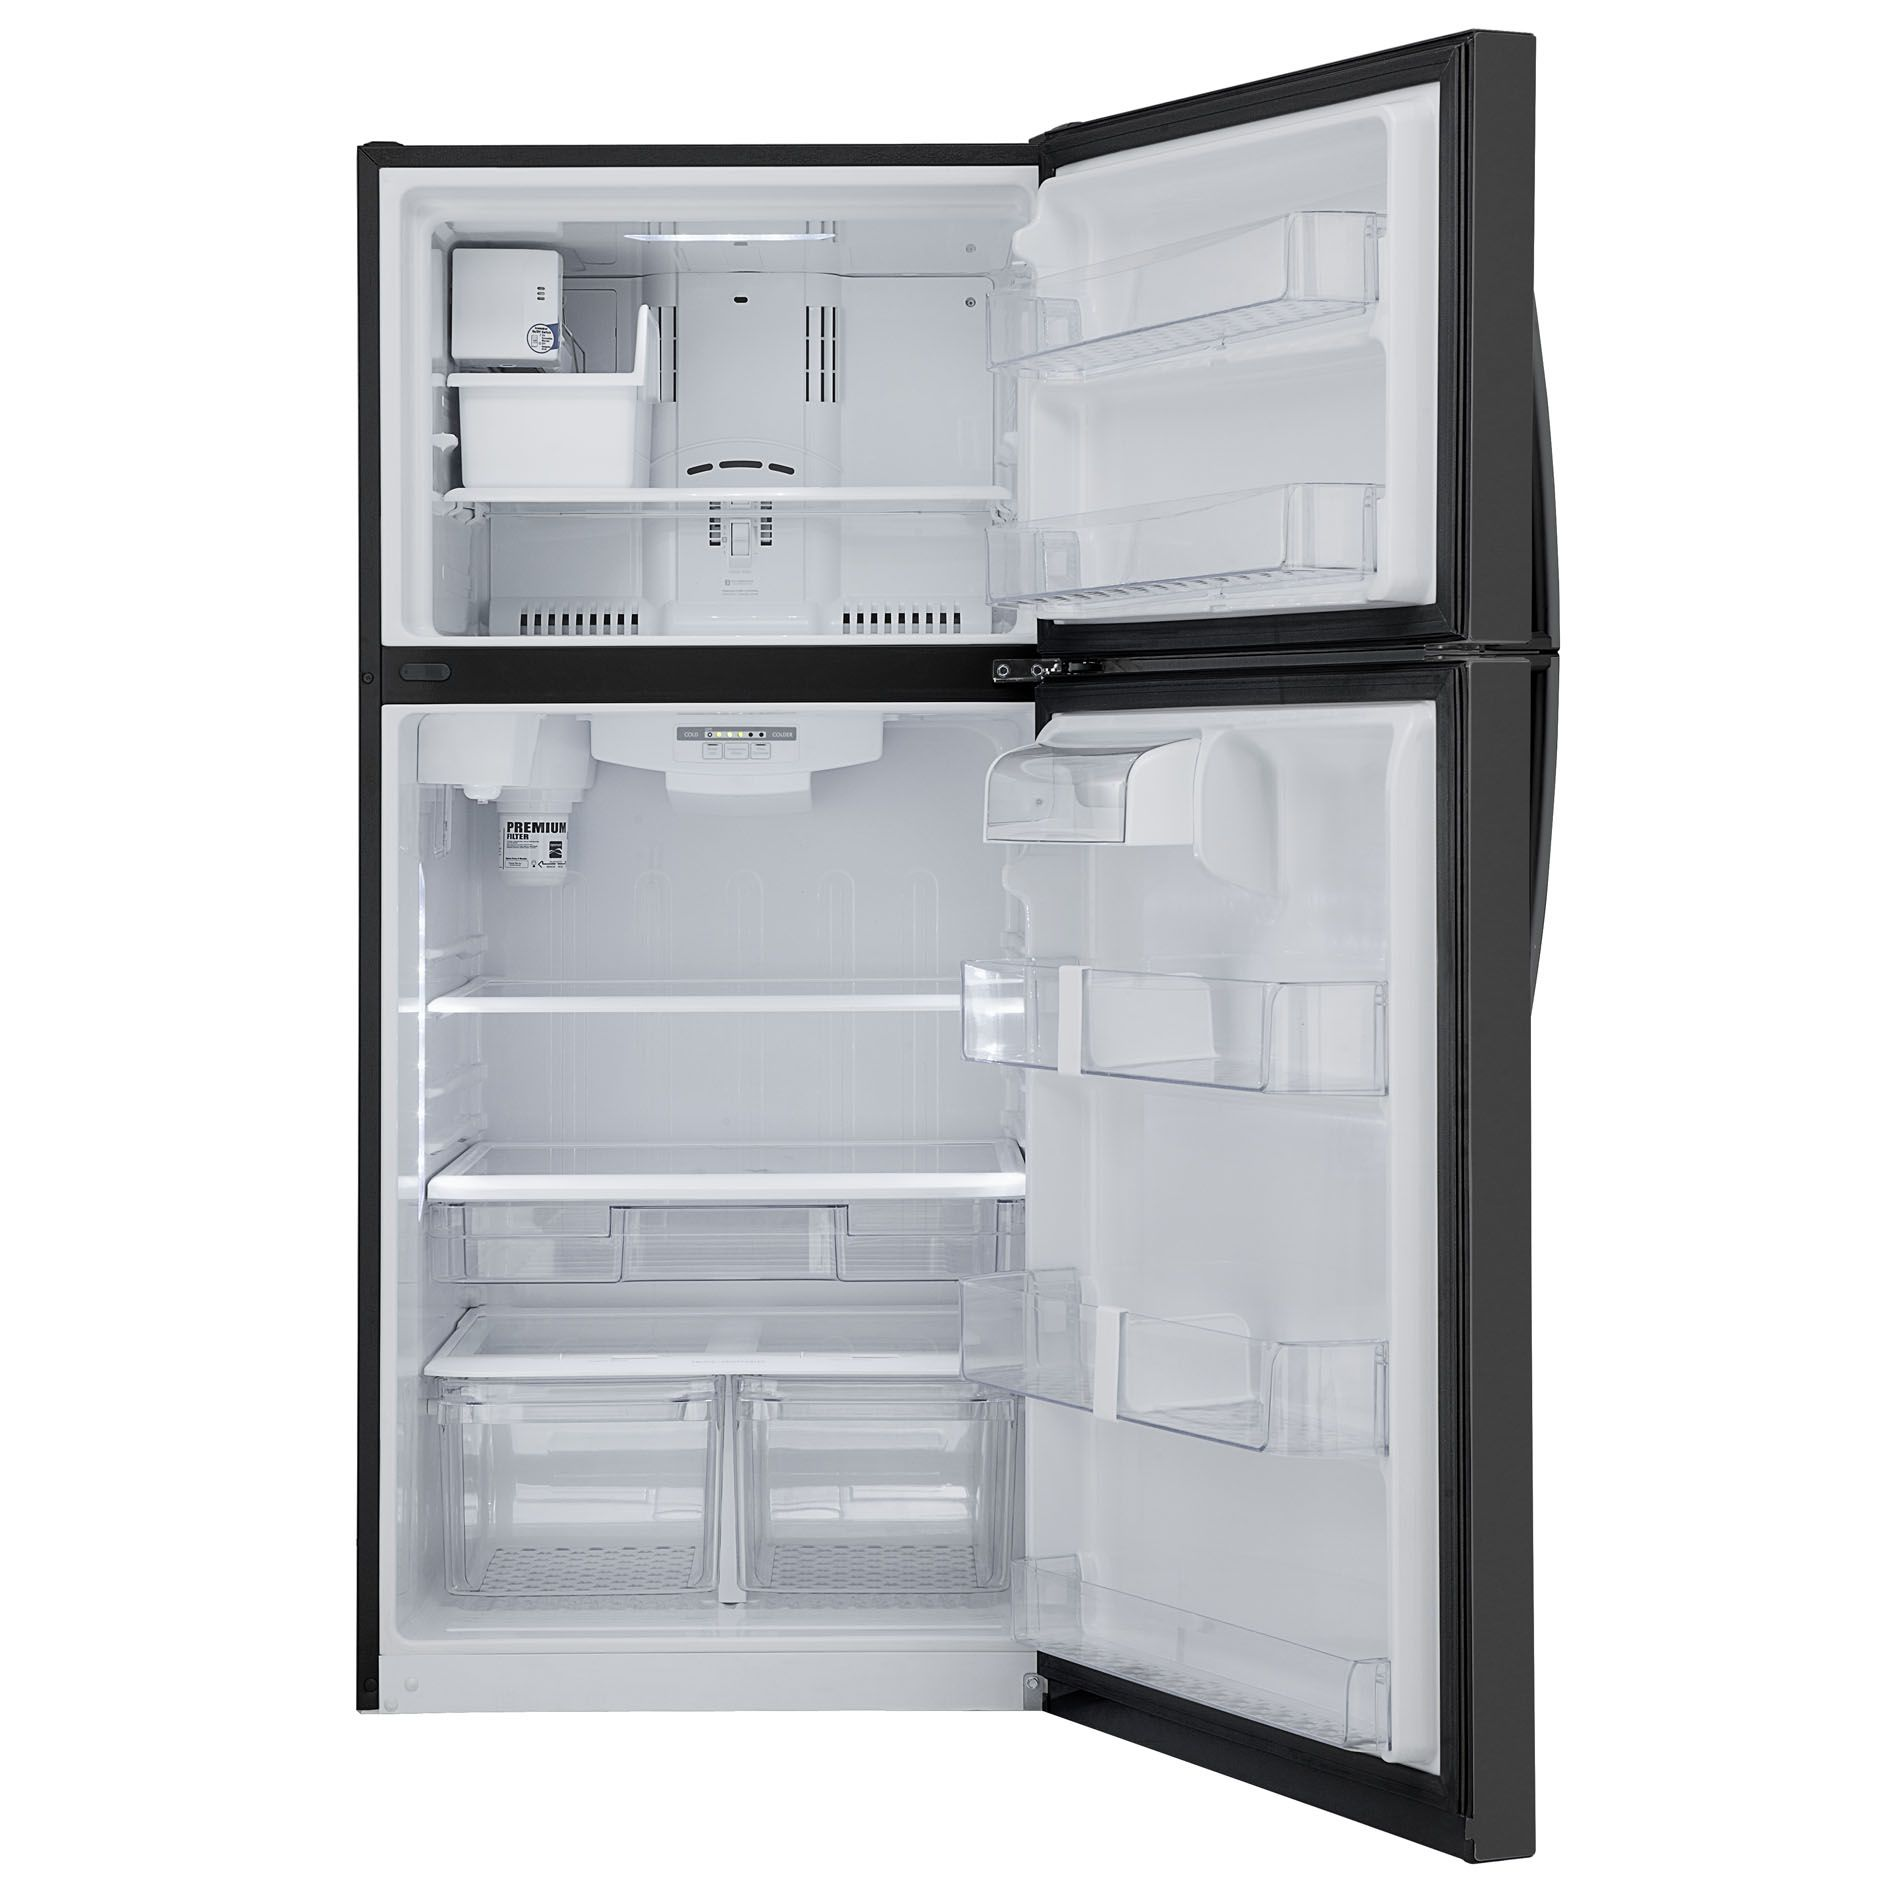 Kenmore 20 cu. ft. Black Top-Freezer Refrigerator with Internal Water Dispenser